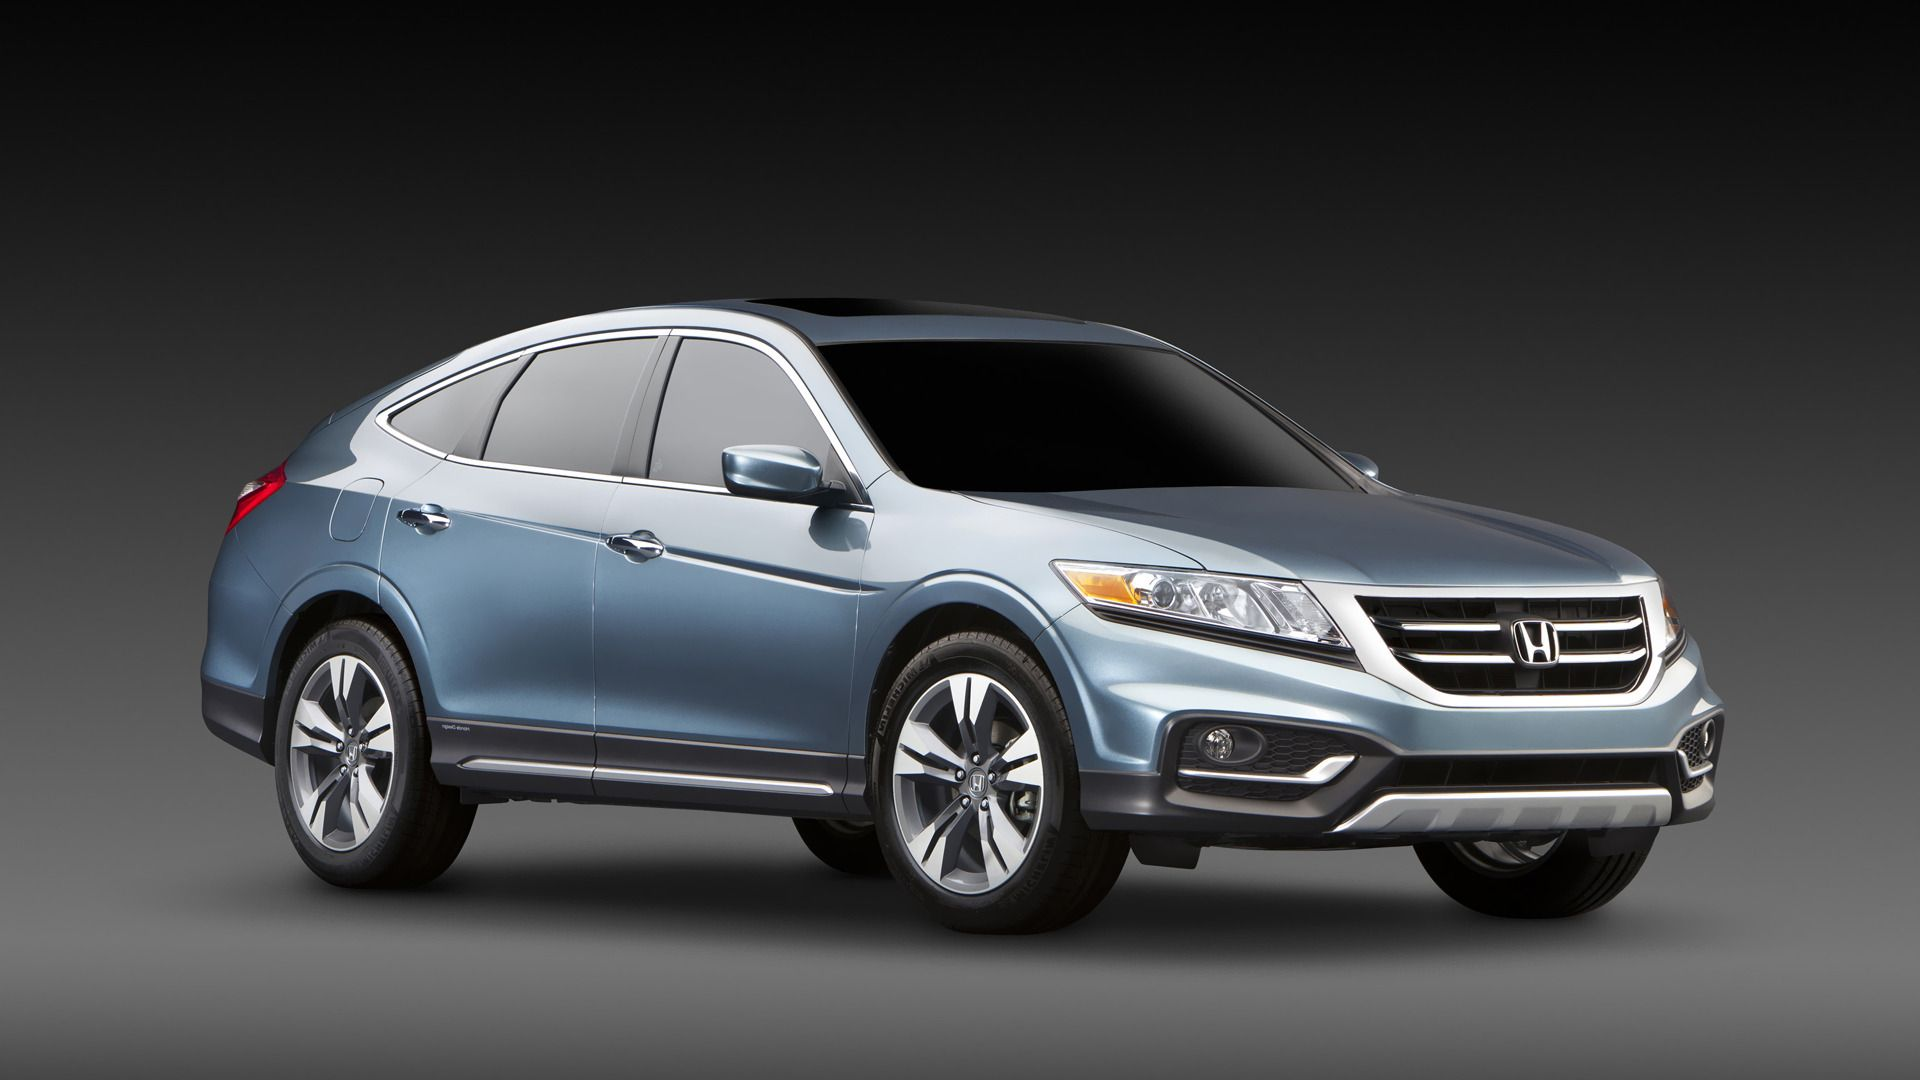 vehicleid crosstour details oh in l black sale pearl used cleveland desc honda vehicle for crystal ex